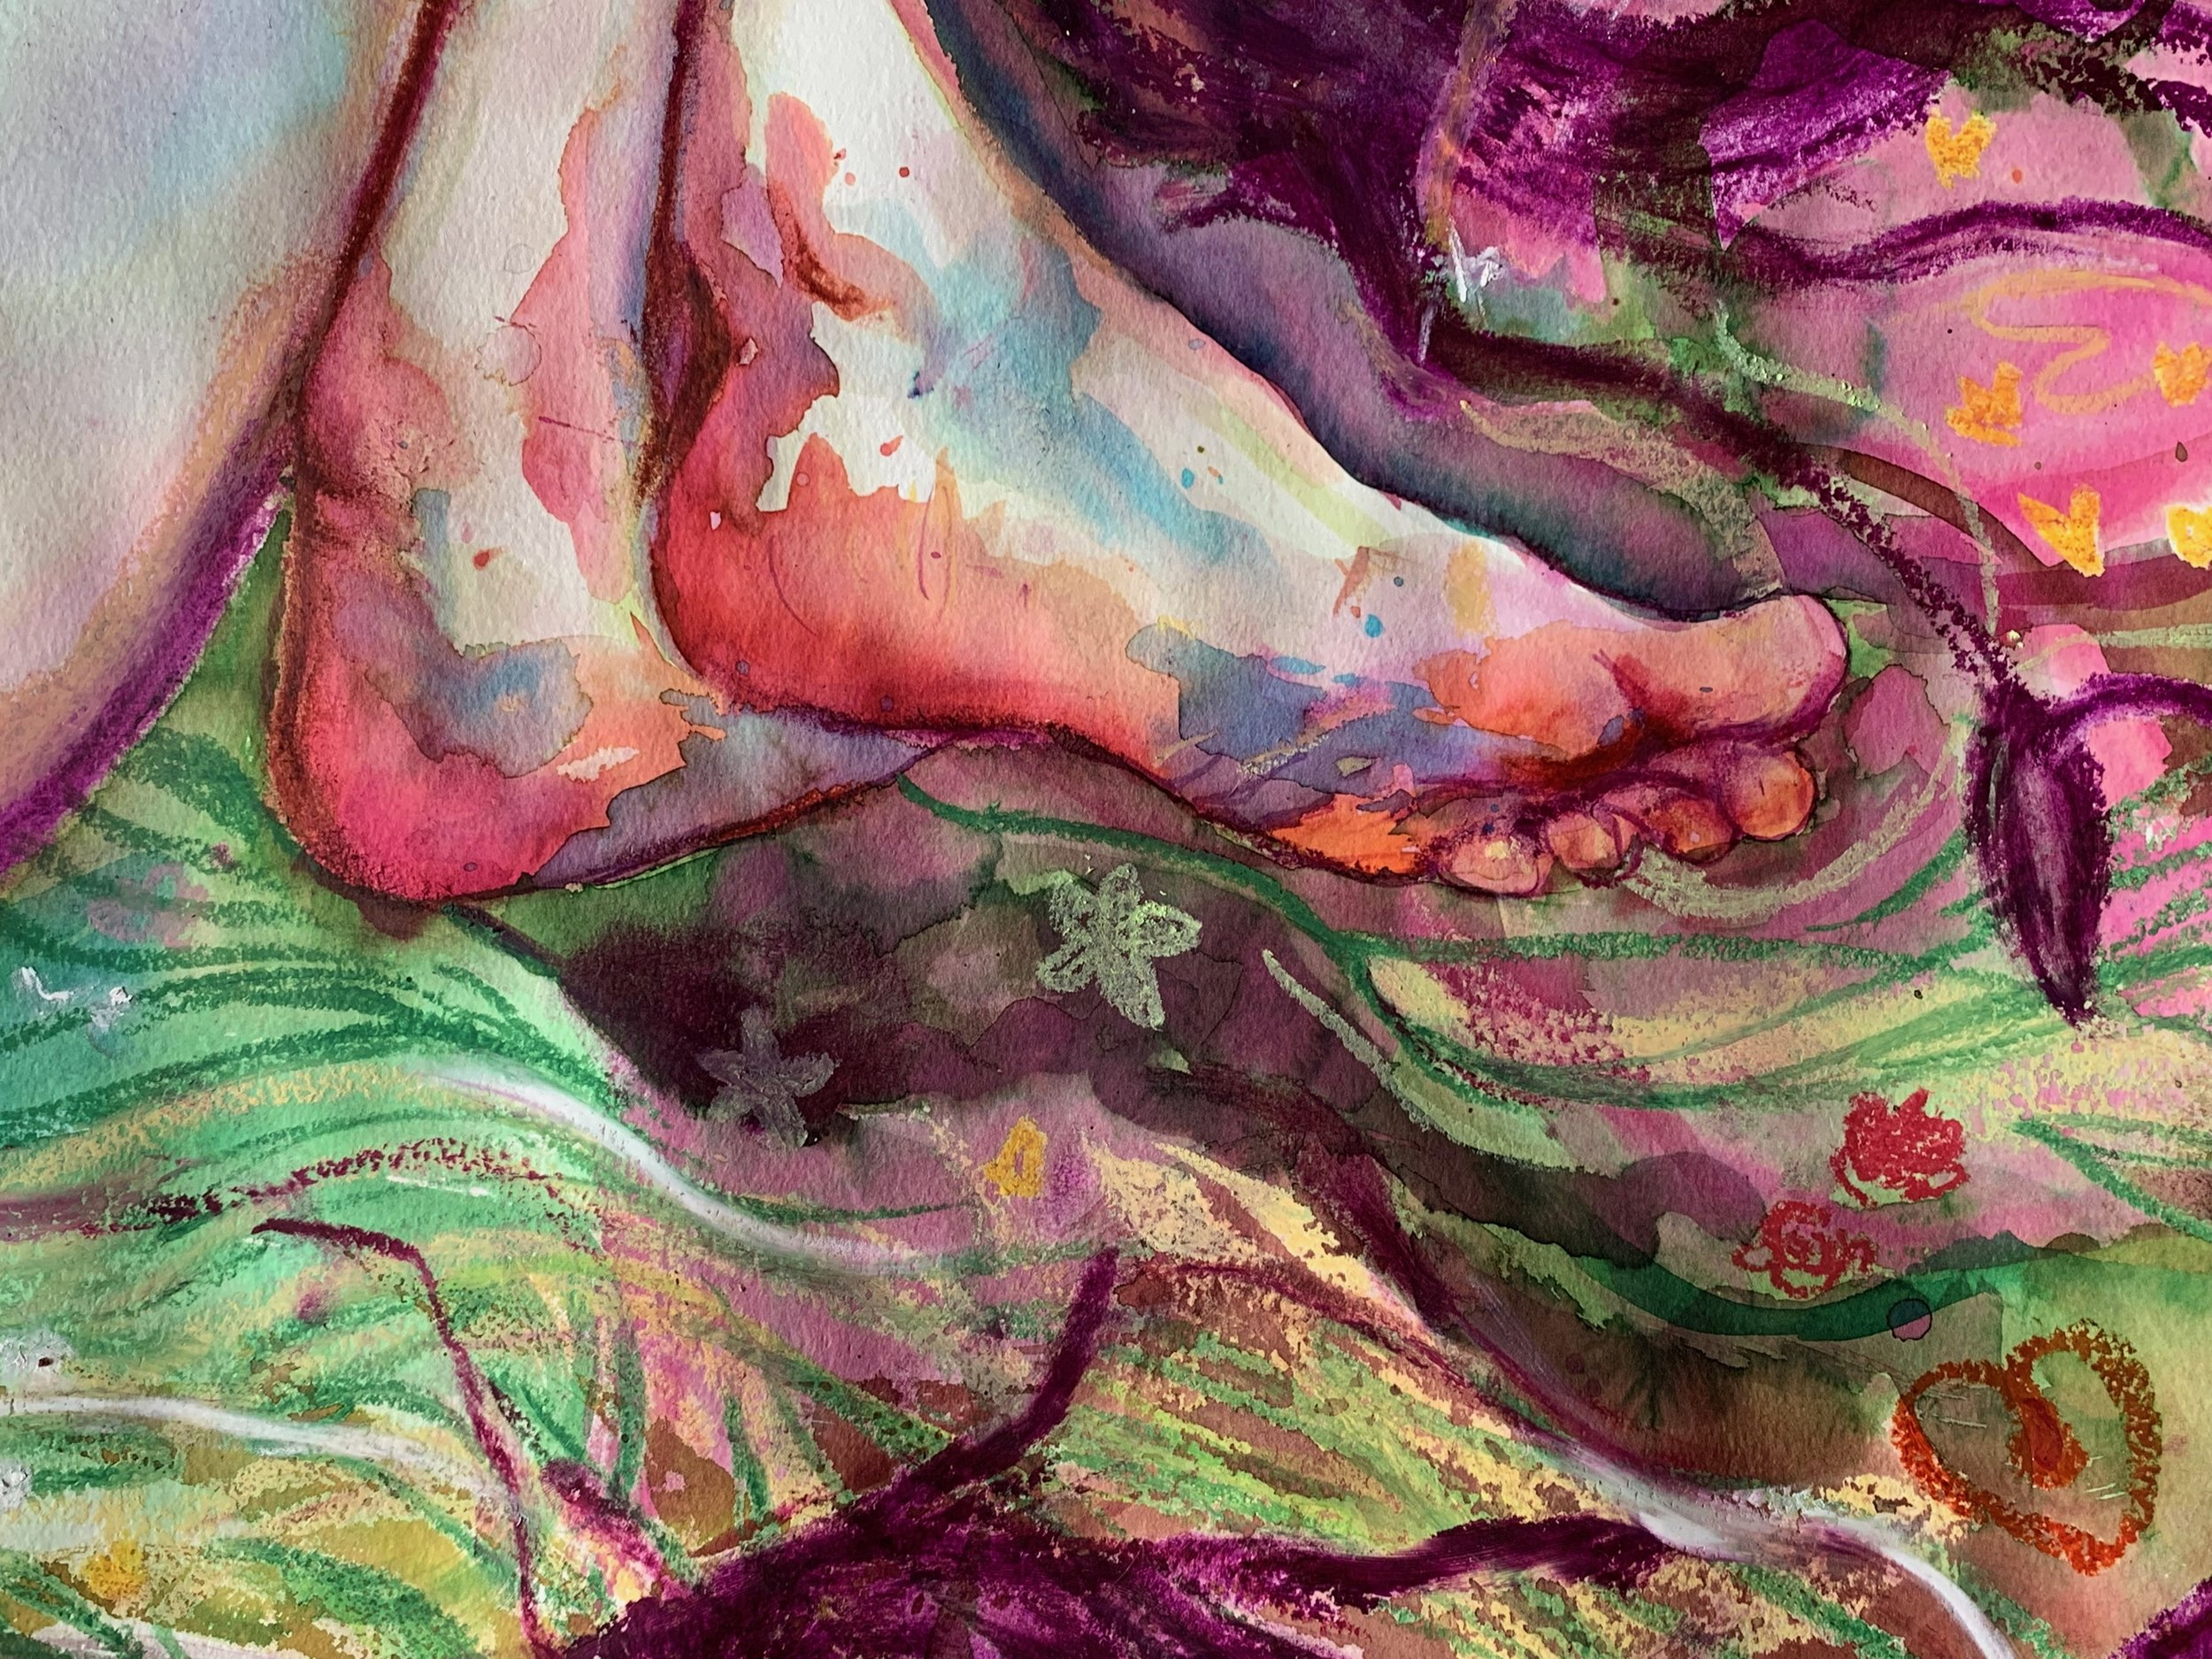 Detail from 'Confluence'